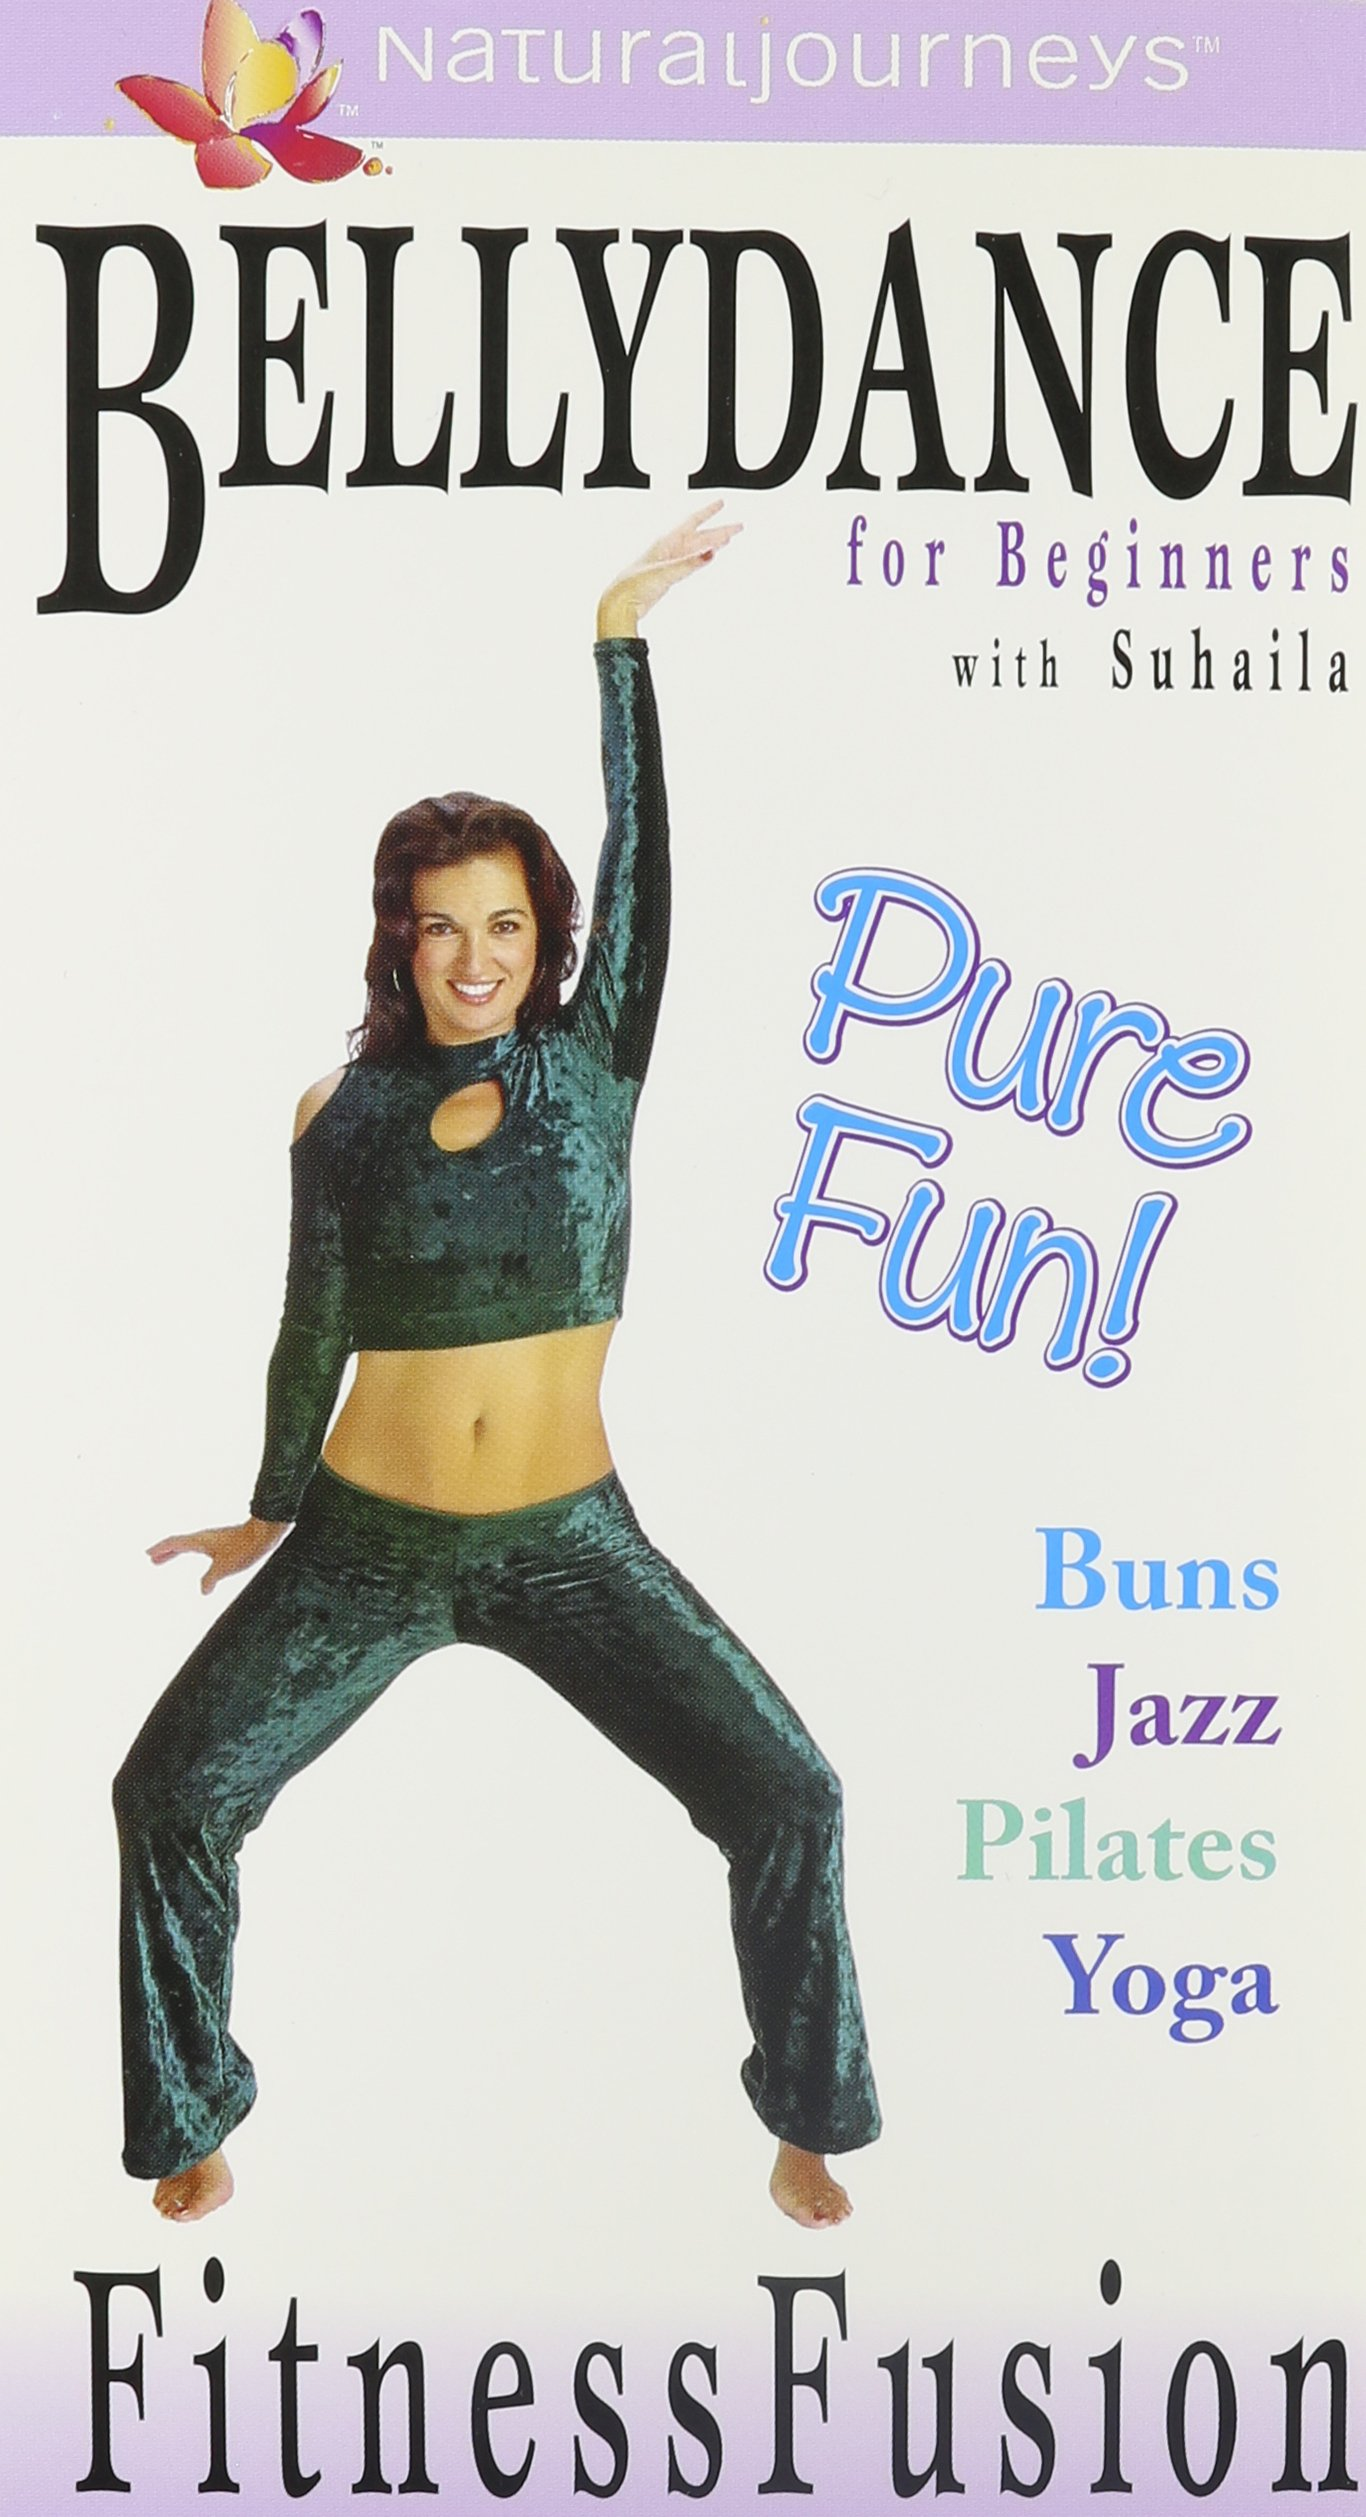 Bellydance for Beginners with Suhaila: Fitness Fusion - 4 Volume Gift Set (Buns, Jazz, Pilates, Yoga) [VHS]